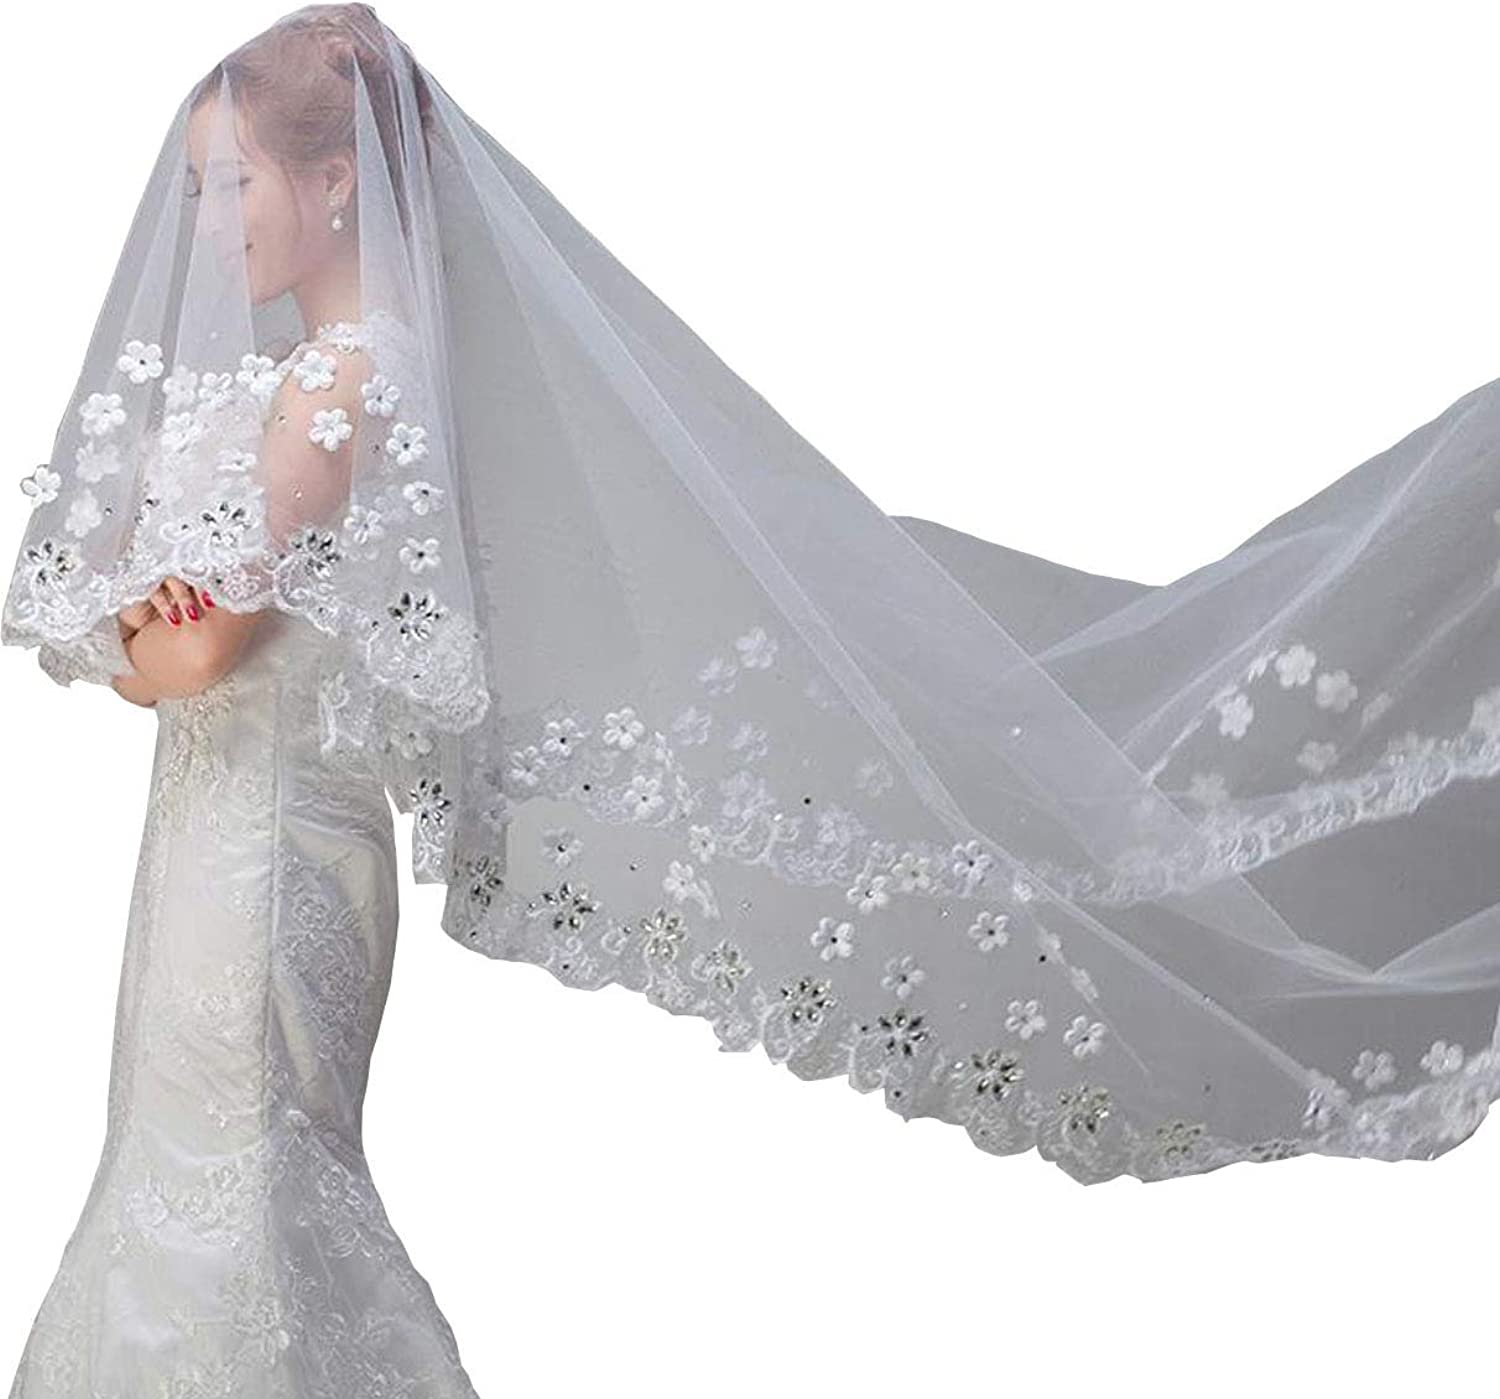 Newdeve Wedding Veil Cathedral Length White 2 Tier Lace Applique bluesher with Comb